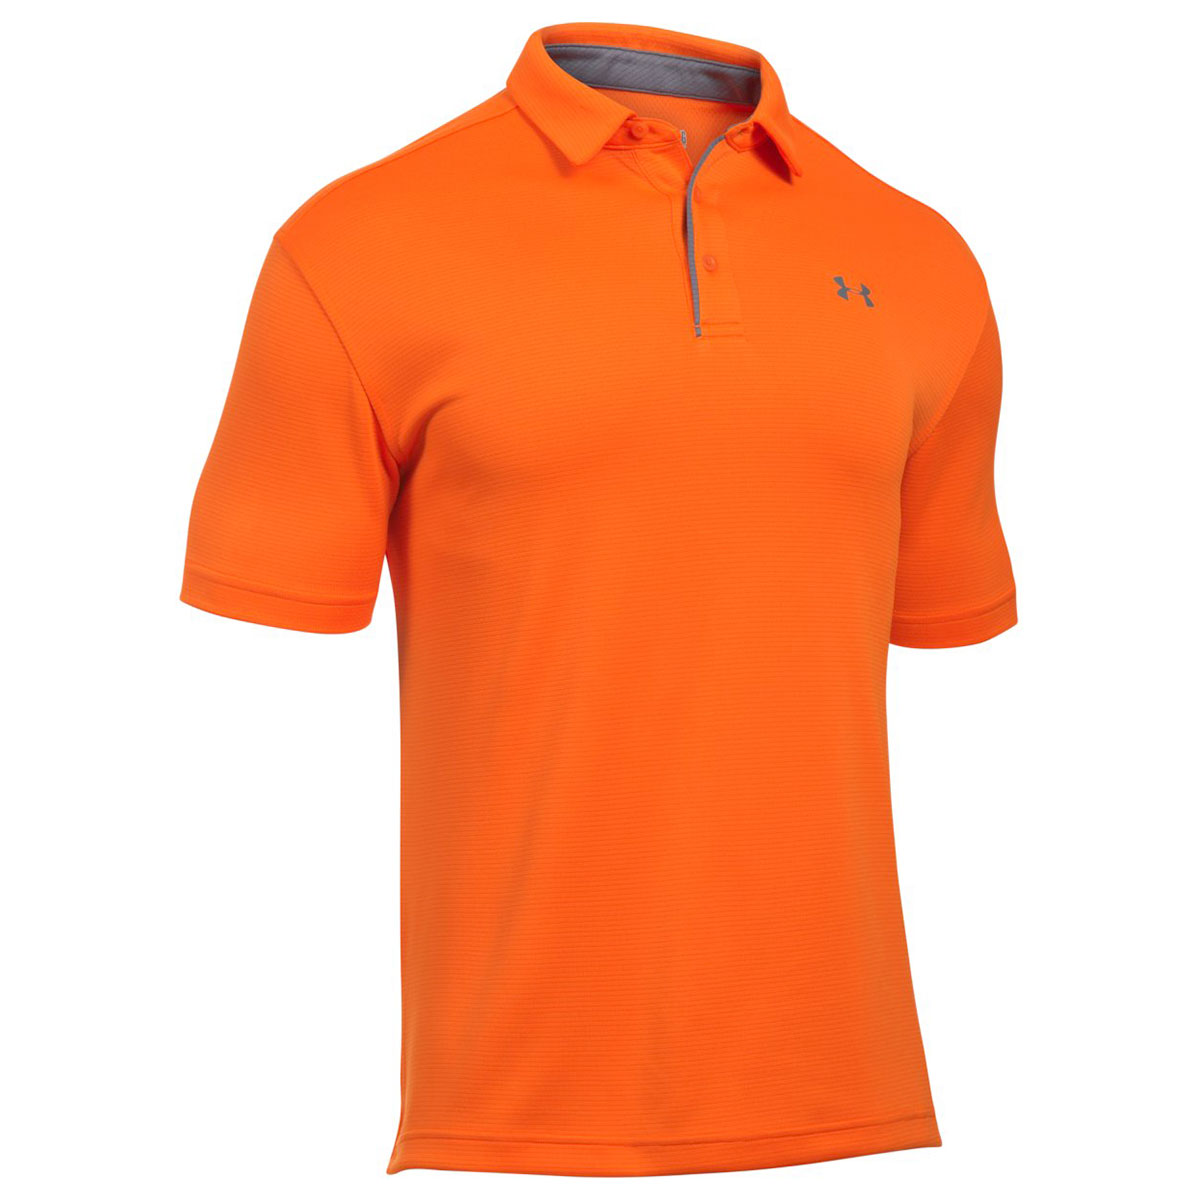 Under-Armour-Mens-Golf-Tech-Wicking-Textured-Soft-Light-Polo-Shirt thumbnail 80